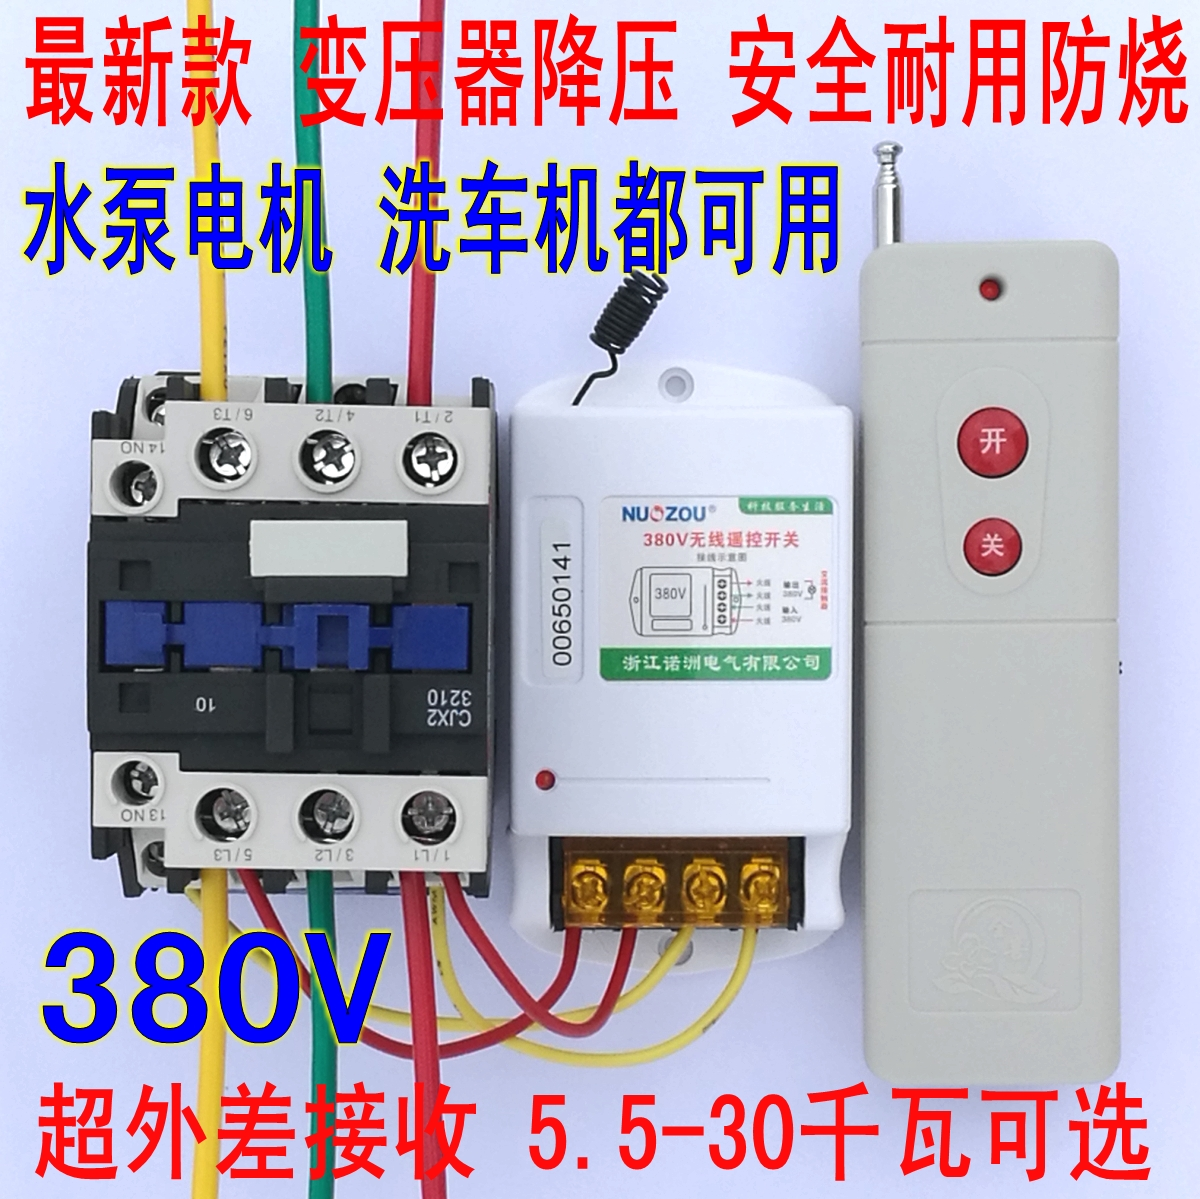 Usd 3189 Remote 380v Wireless Control Switch 3000m Single Two Way For Water Pump Color Classification 220v One 3 Km 5 Kw 10